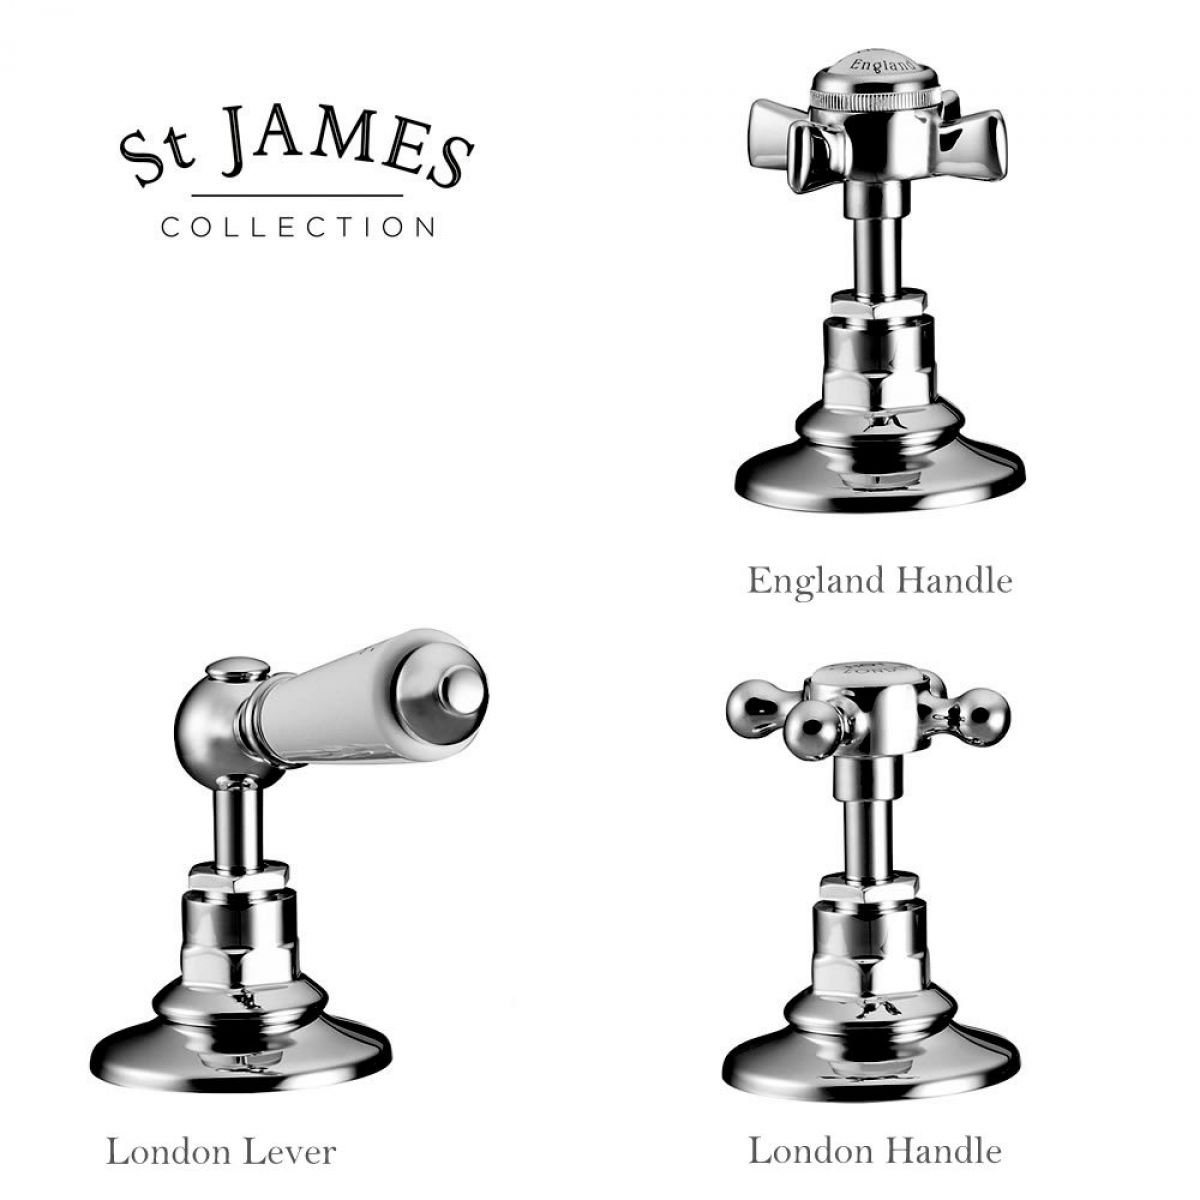 st james exposed thermostatic shower valve uk bathrooms st james exposed thermostatic shower valve